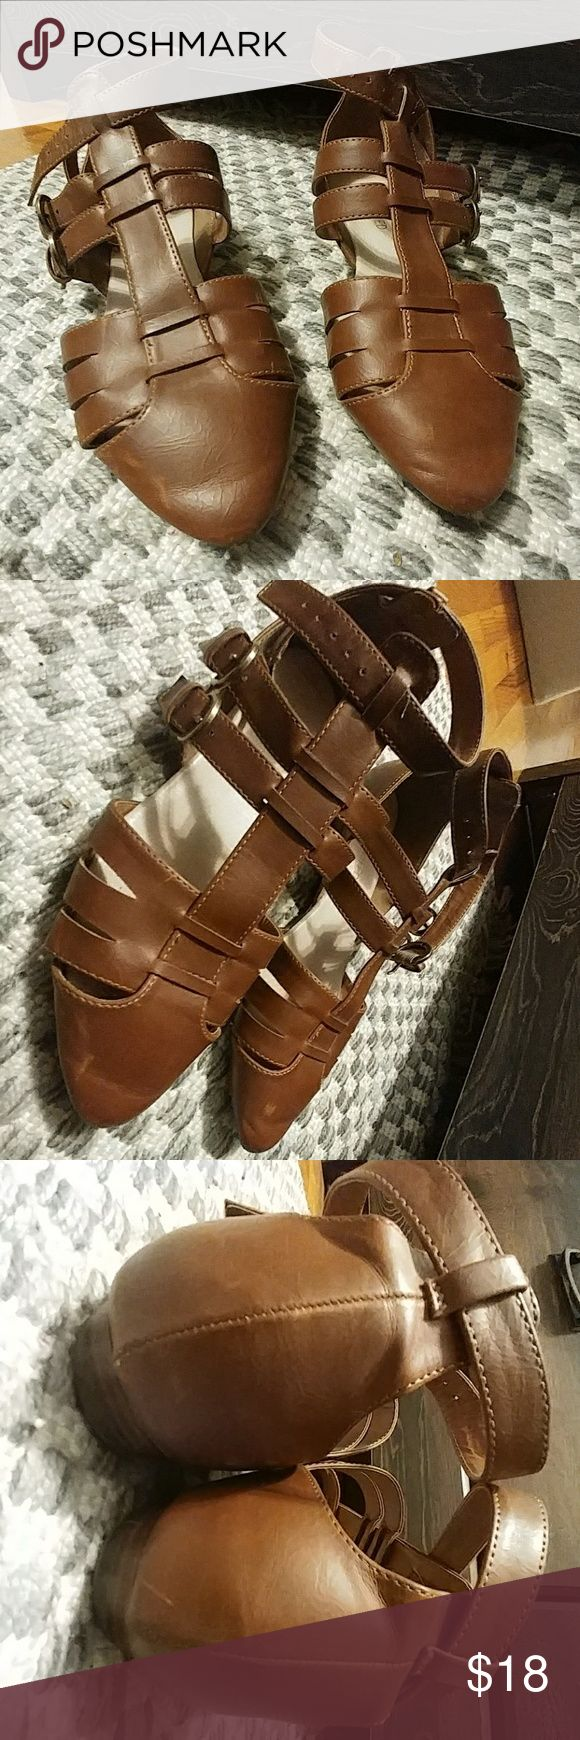 Size 8 Leather Restricted Sandals Great condition and like new. Hardly any wear and no apparent defects. Very comfortable and go great with most outfits! Restricted Shoes Sandals